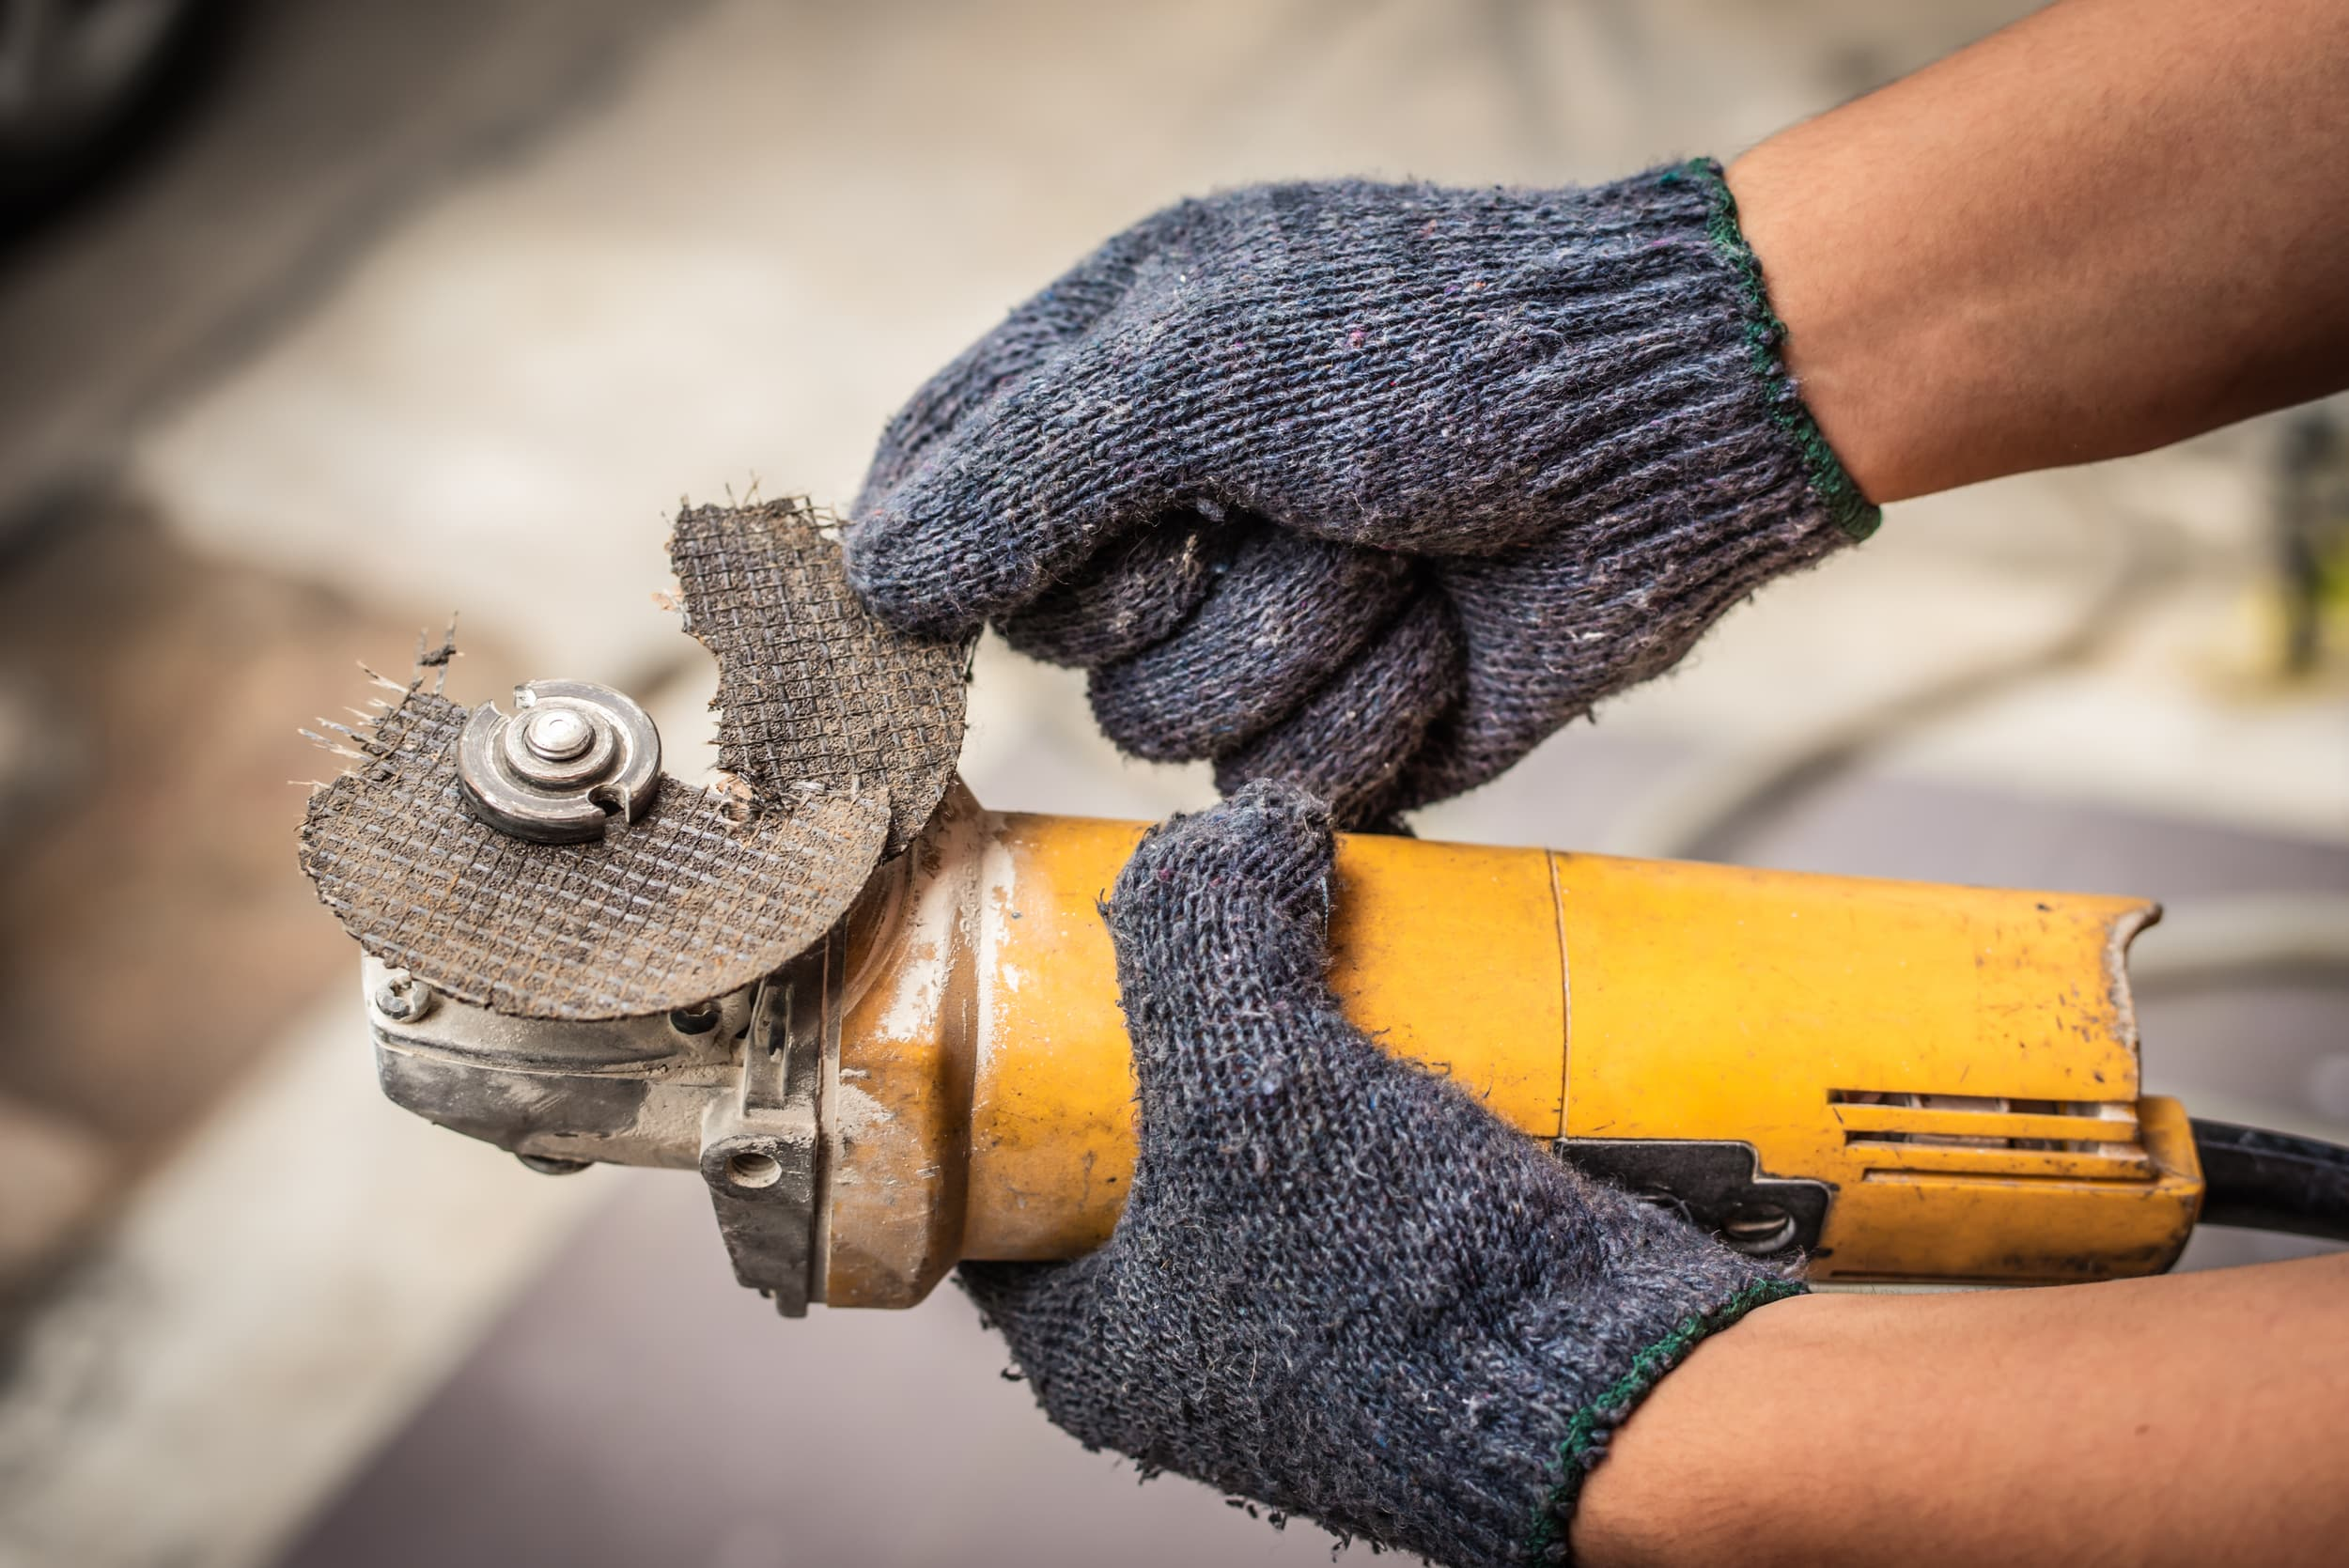 Compliance Training Online Hand & Power Tool Safety course